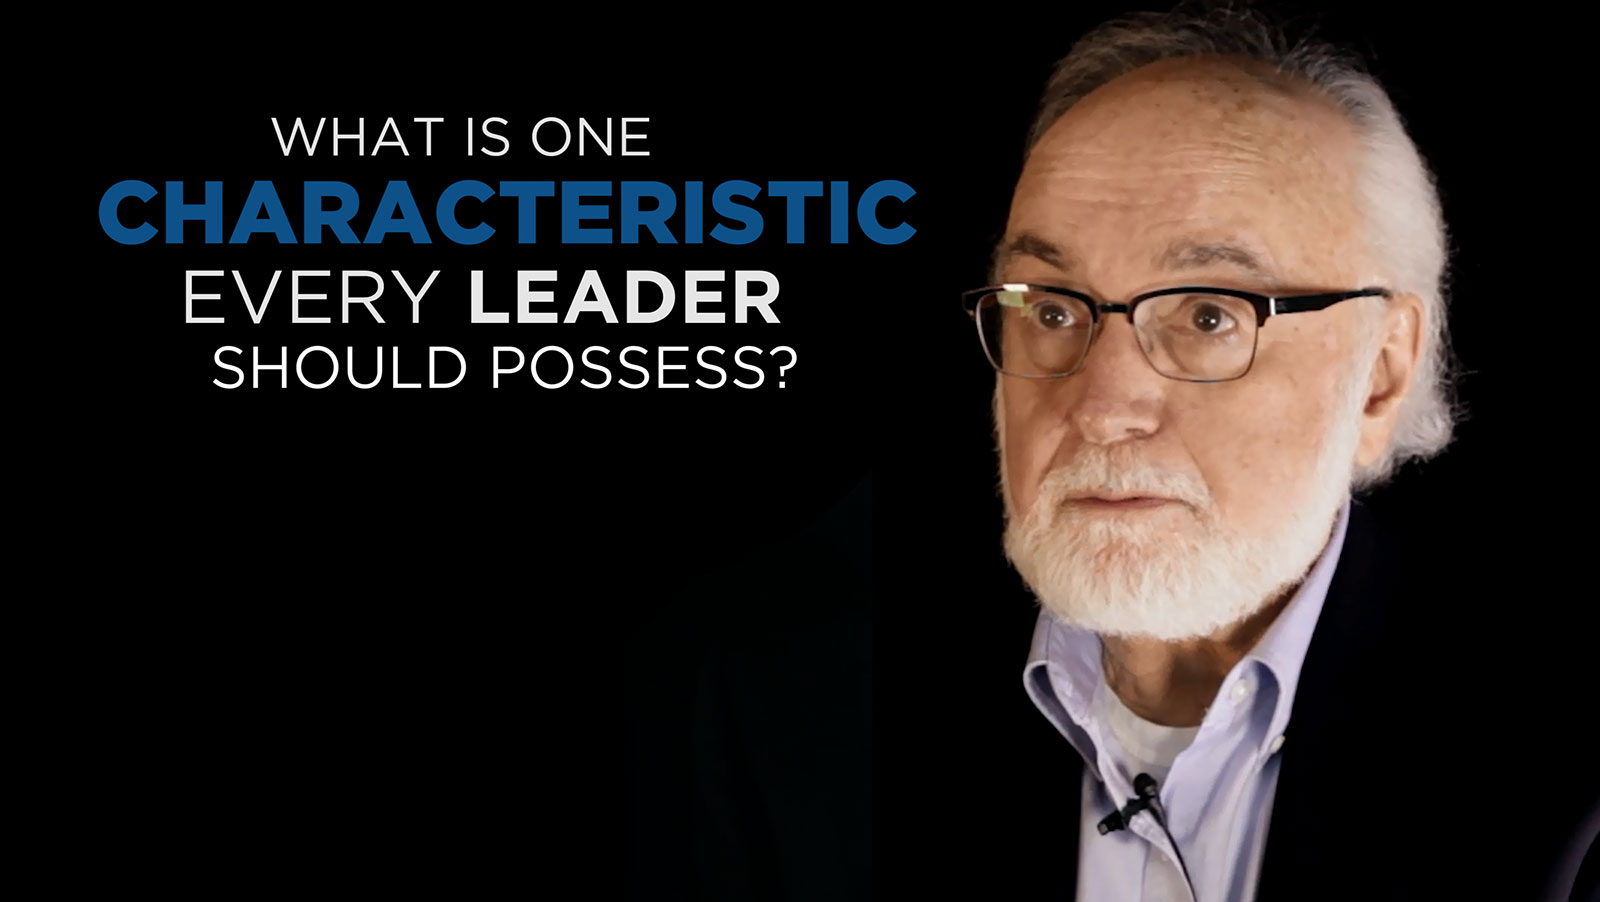 Shared Experience - What is one characteristic every leader should possess?